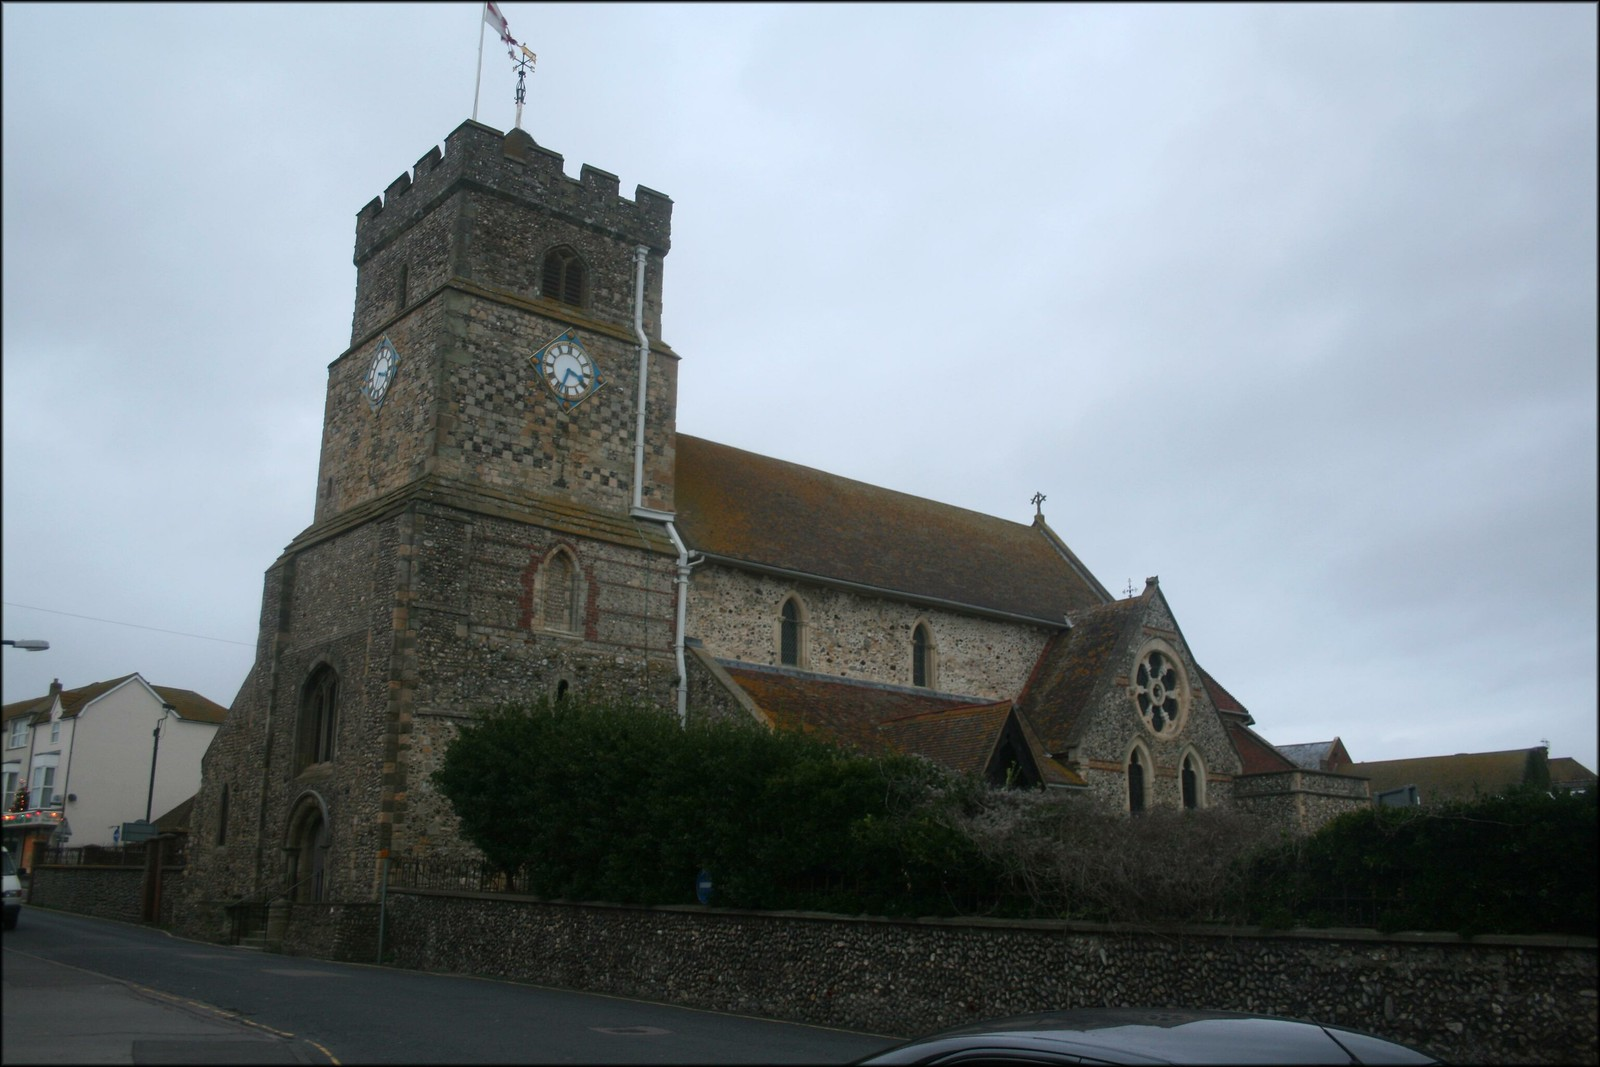 Church in Seaford, East Sussex